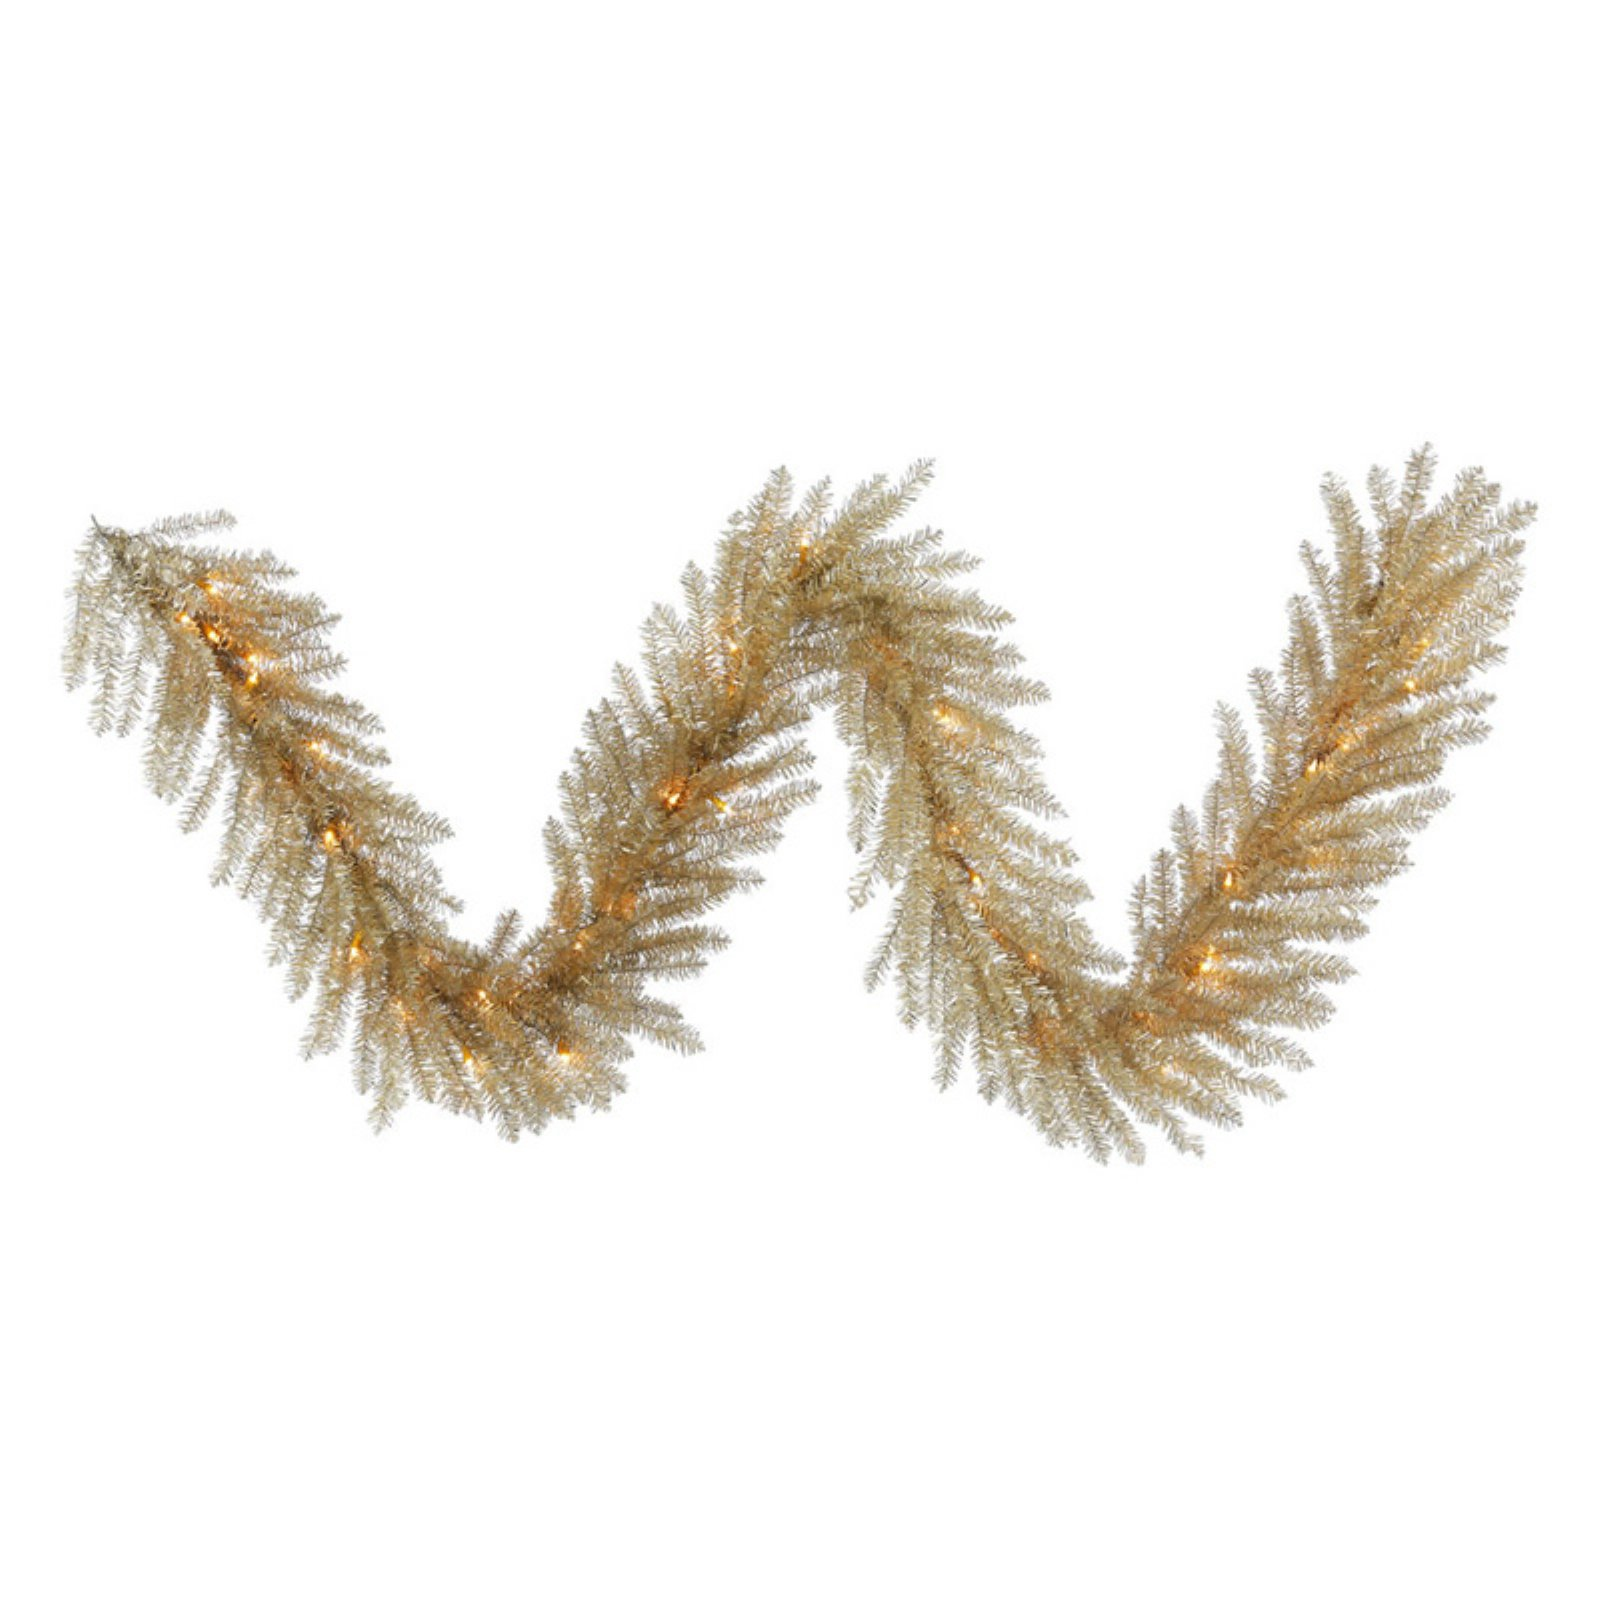 Vickerman 9' Champagne Tinsel Artificial Christmas Garland with 50 Clear Lights